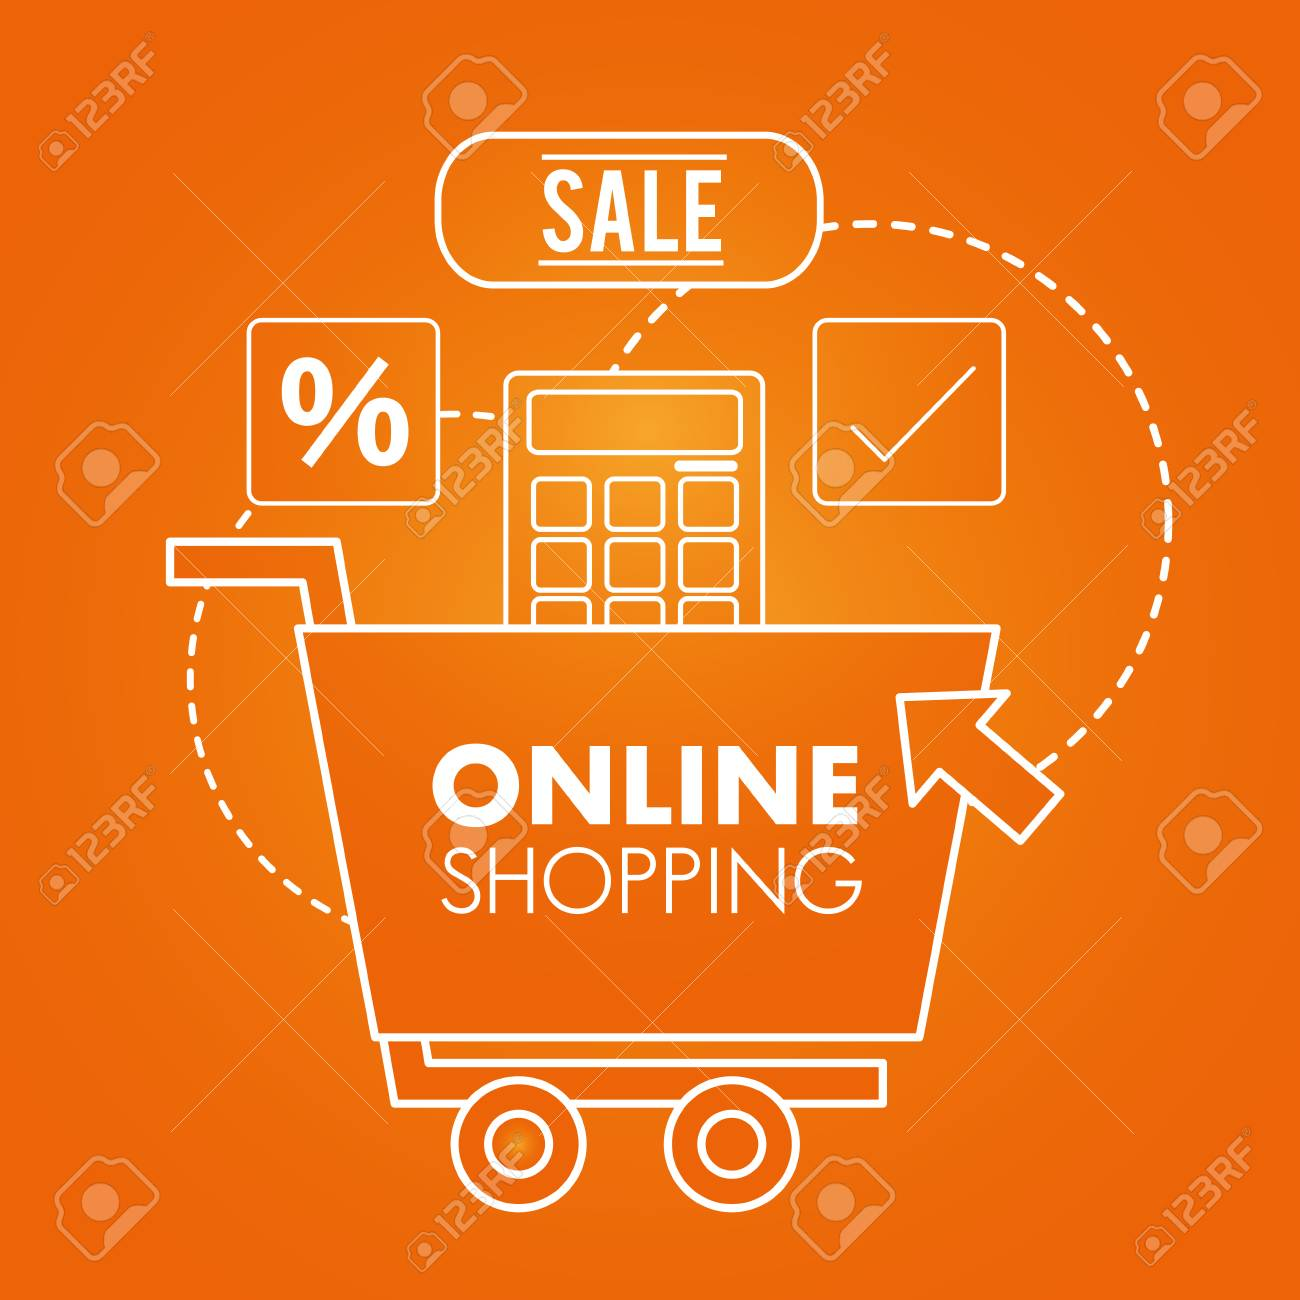 Online Shopping Sale Discount Offers Shop Car Sign Vector Illustration Royalty Free Cliparts Vectors And Stock Illustration Image 105875791